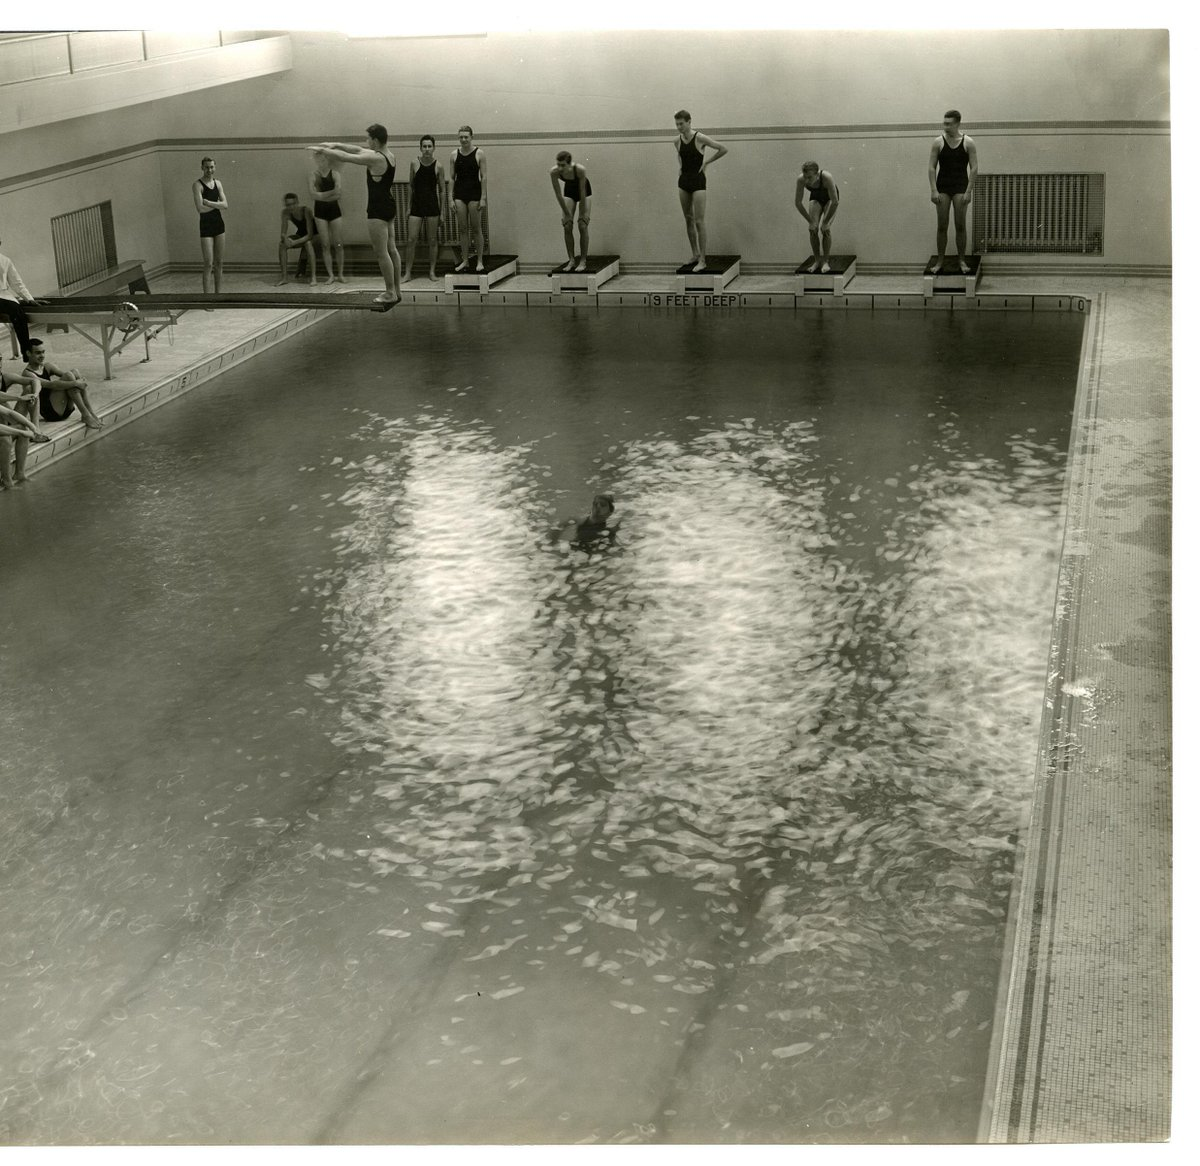 test Twitter Media - #TBT Did you know Fayerweather used to have a pool? It was built in 1913 when Fayerweather was a gymnasium! Converted to Fayerweather Hall in 2005, the building now houses a ballroom, catering kitchen, and dance studios.  📷: Wesleyan Special Collections & Archives. https://t.co/X3Znrevuey